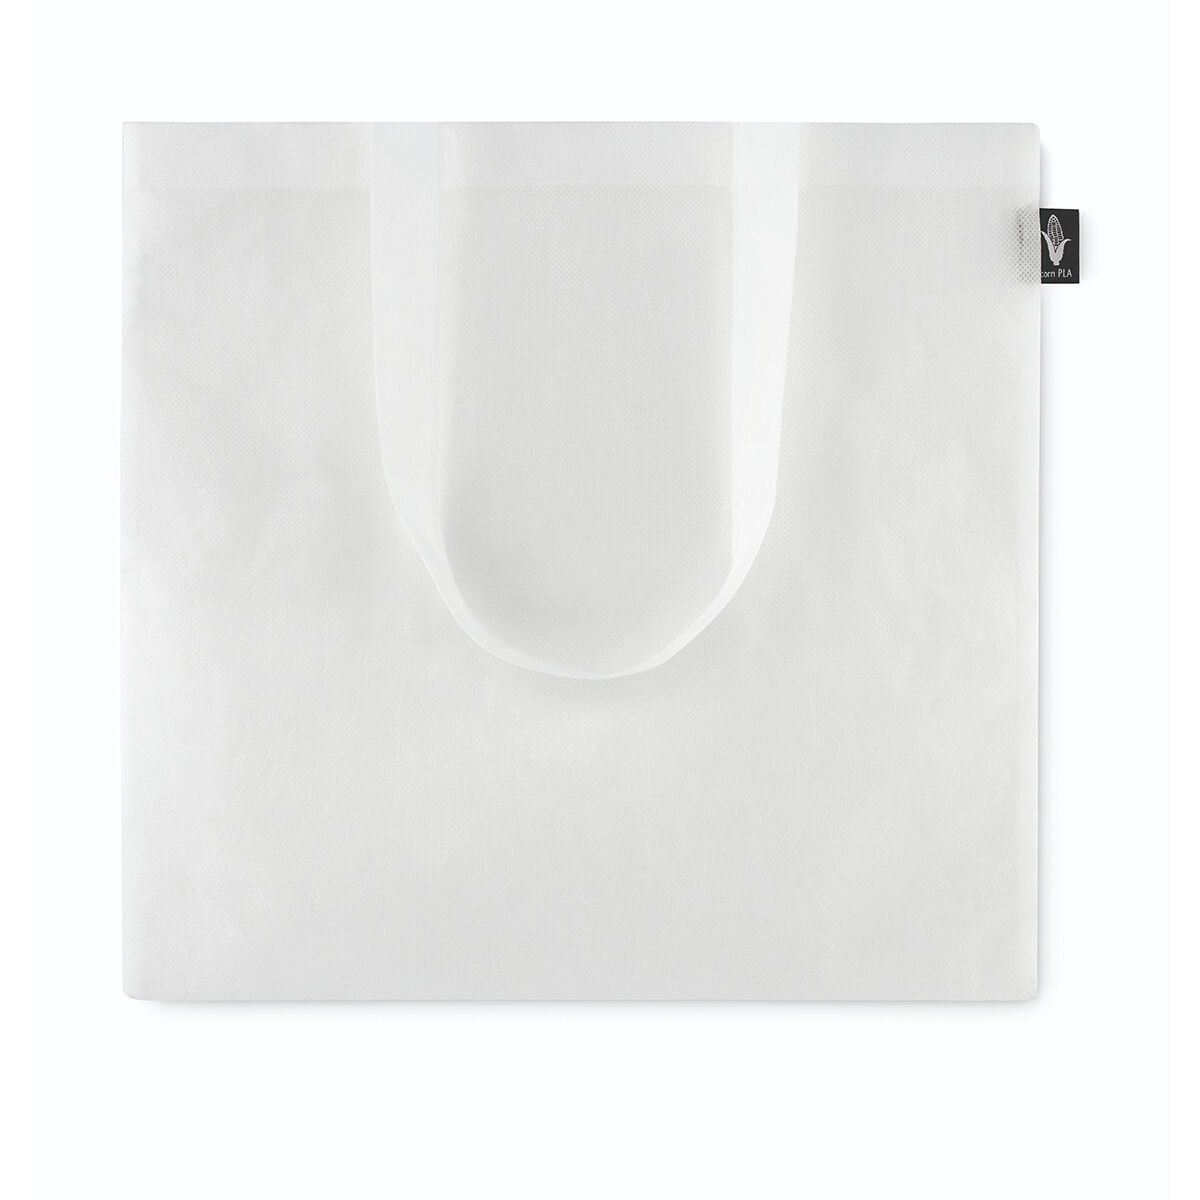 Shopping Bag Made from Bio Material